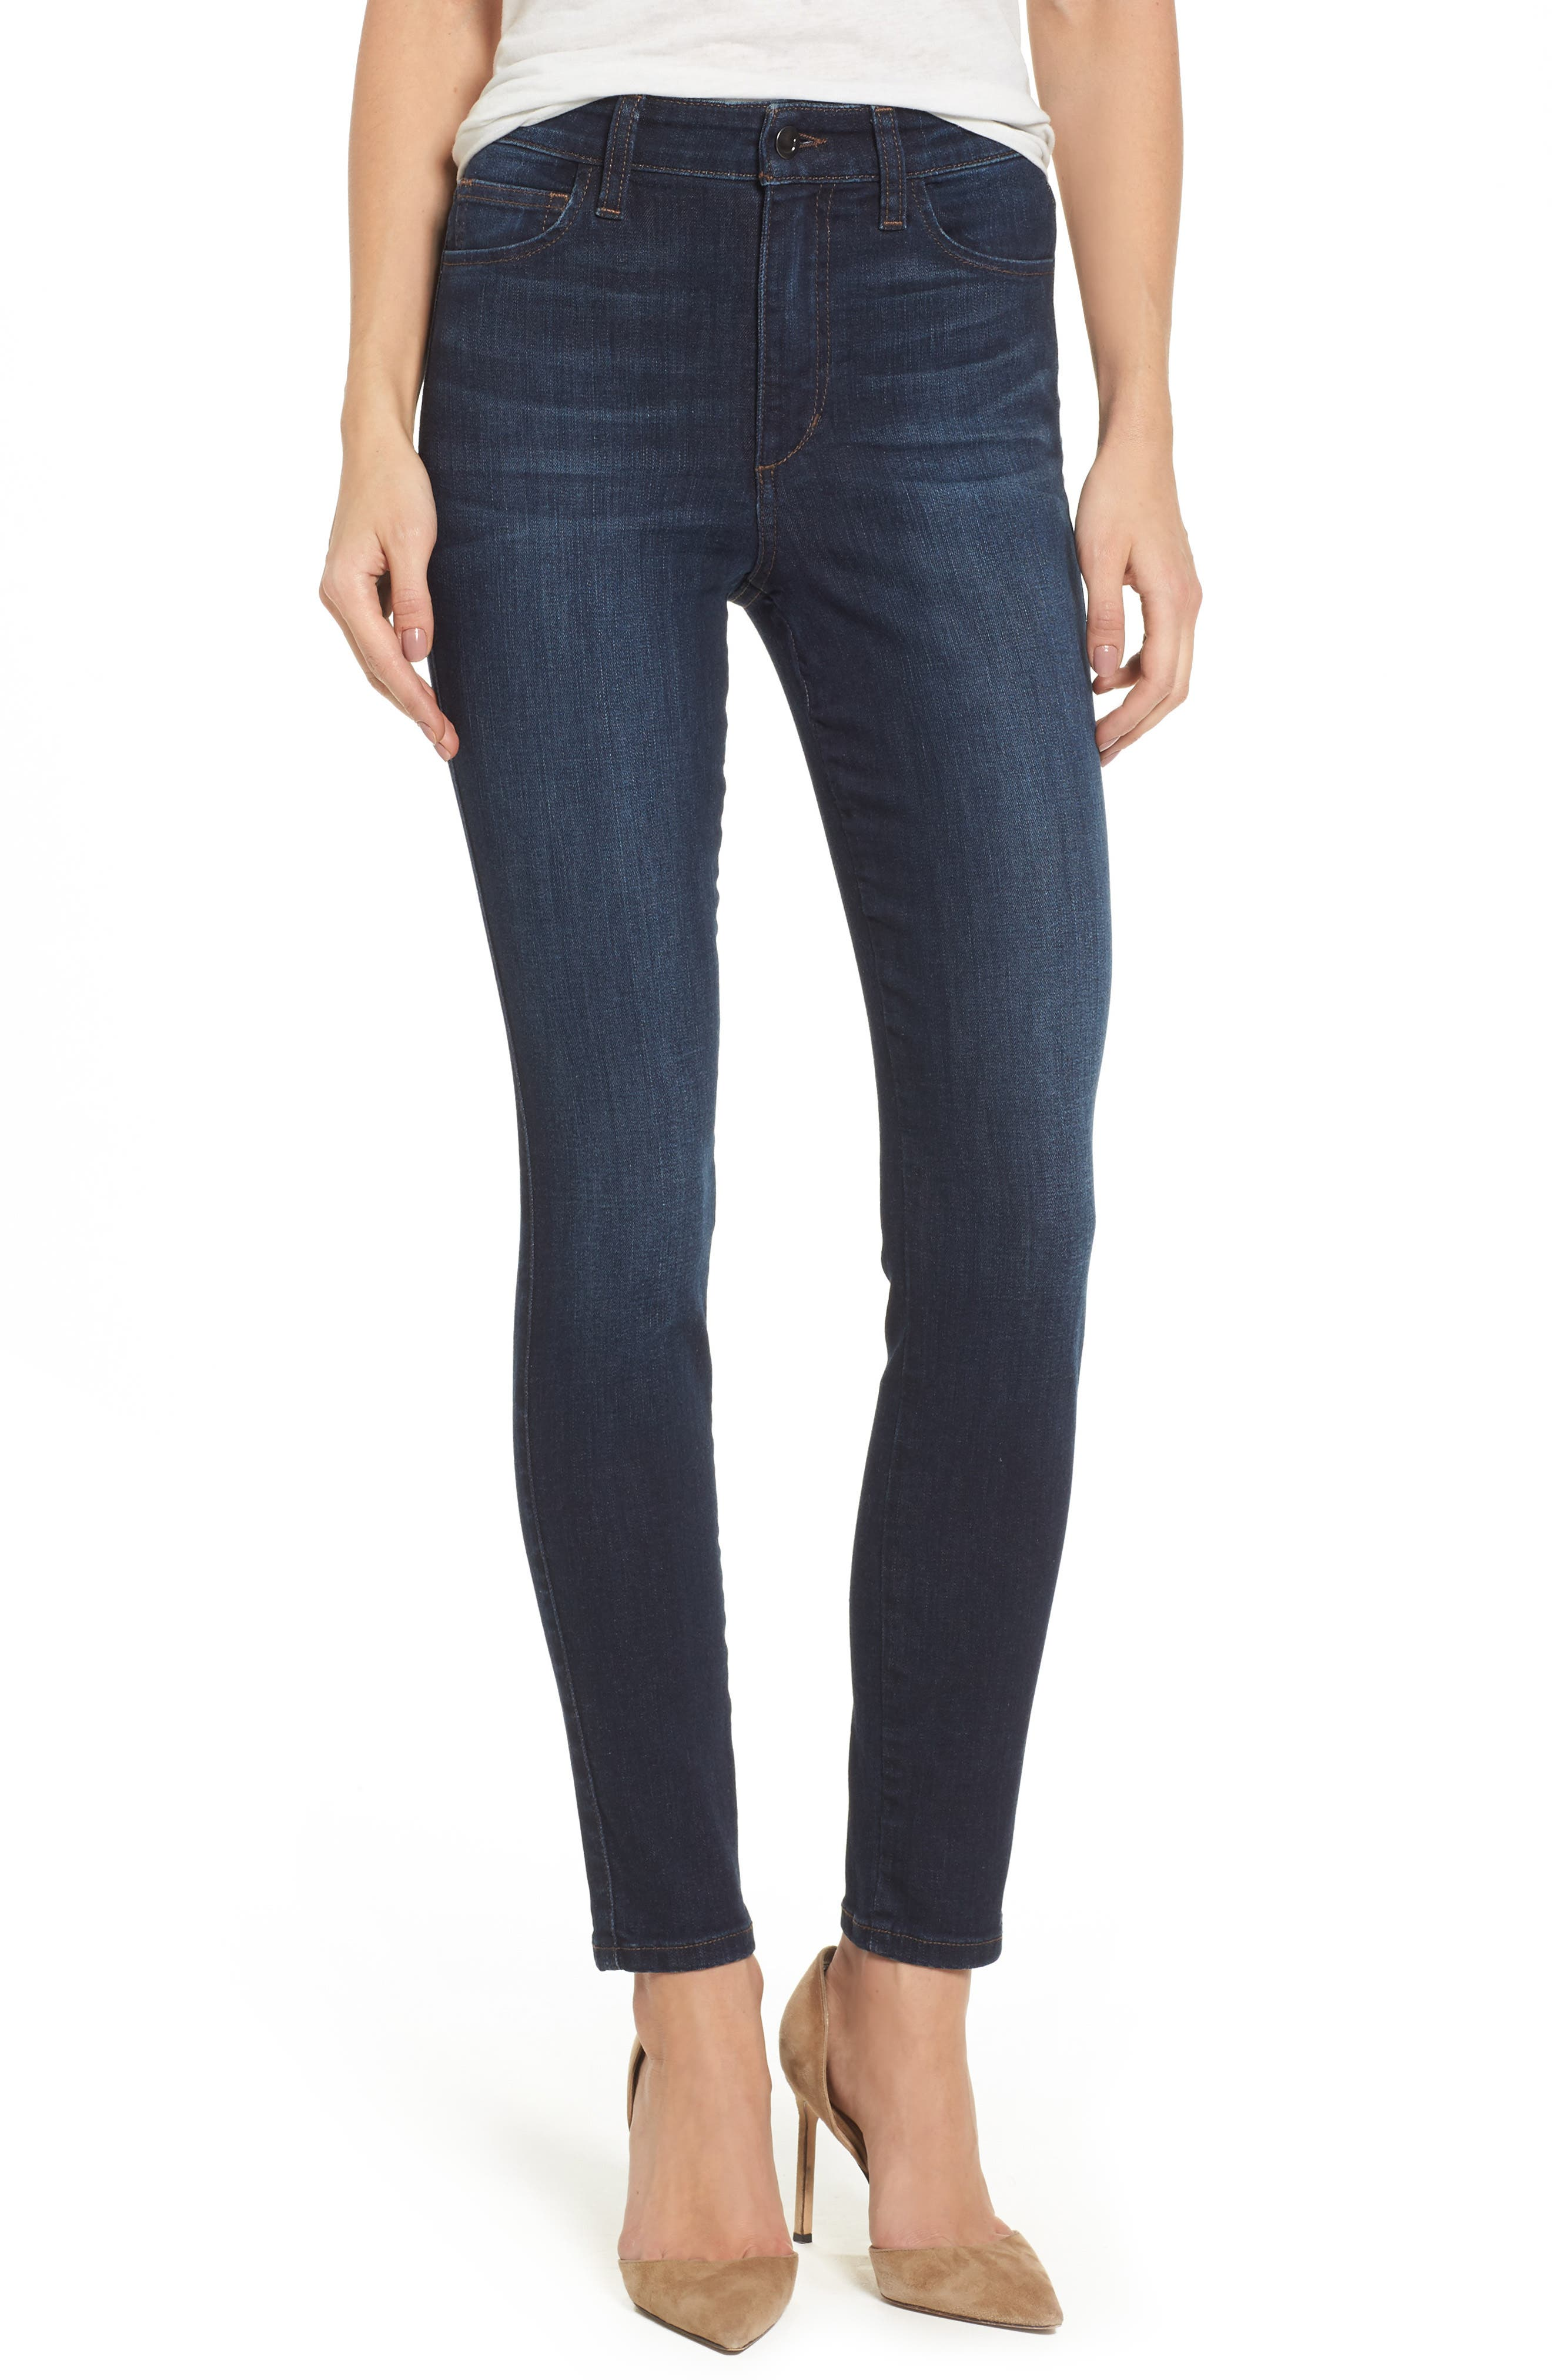 Charlie High Waist Skinny Jeans,                             Main thumbnail 1, color,                             405